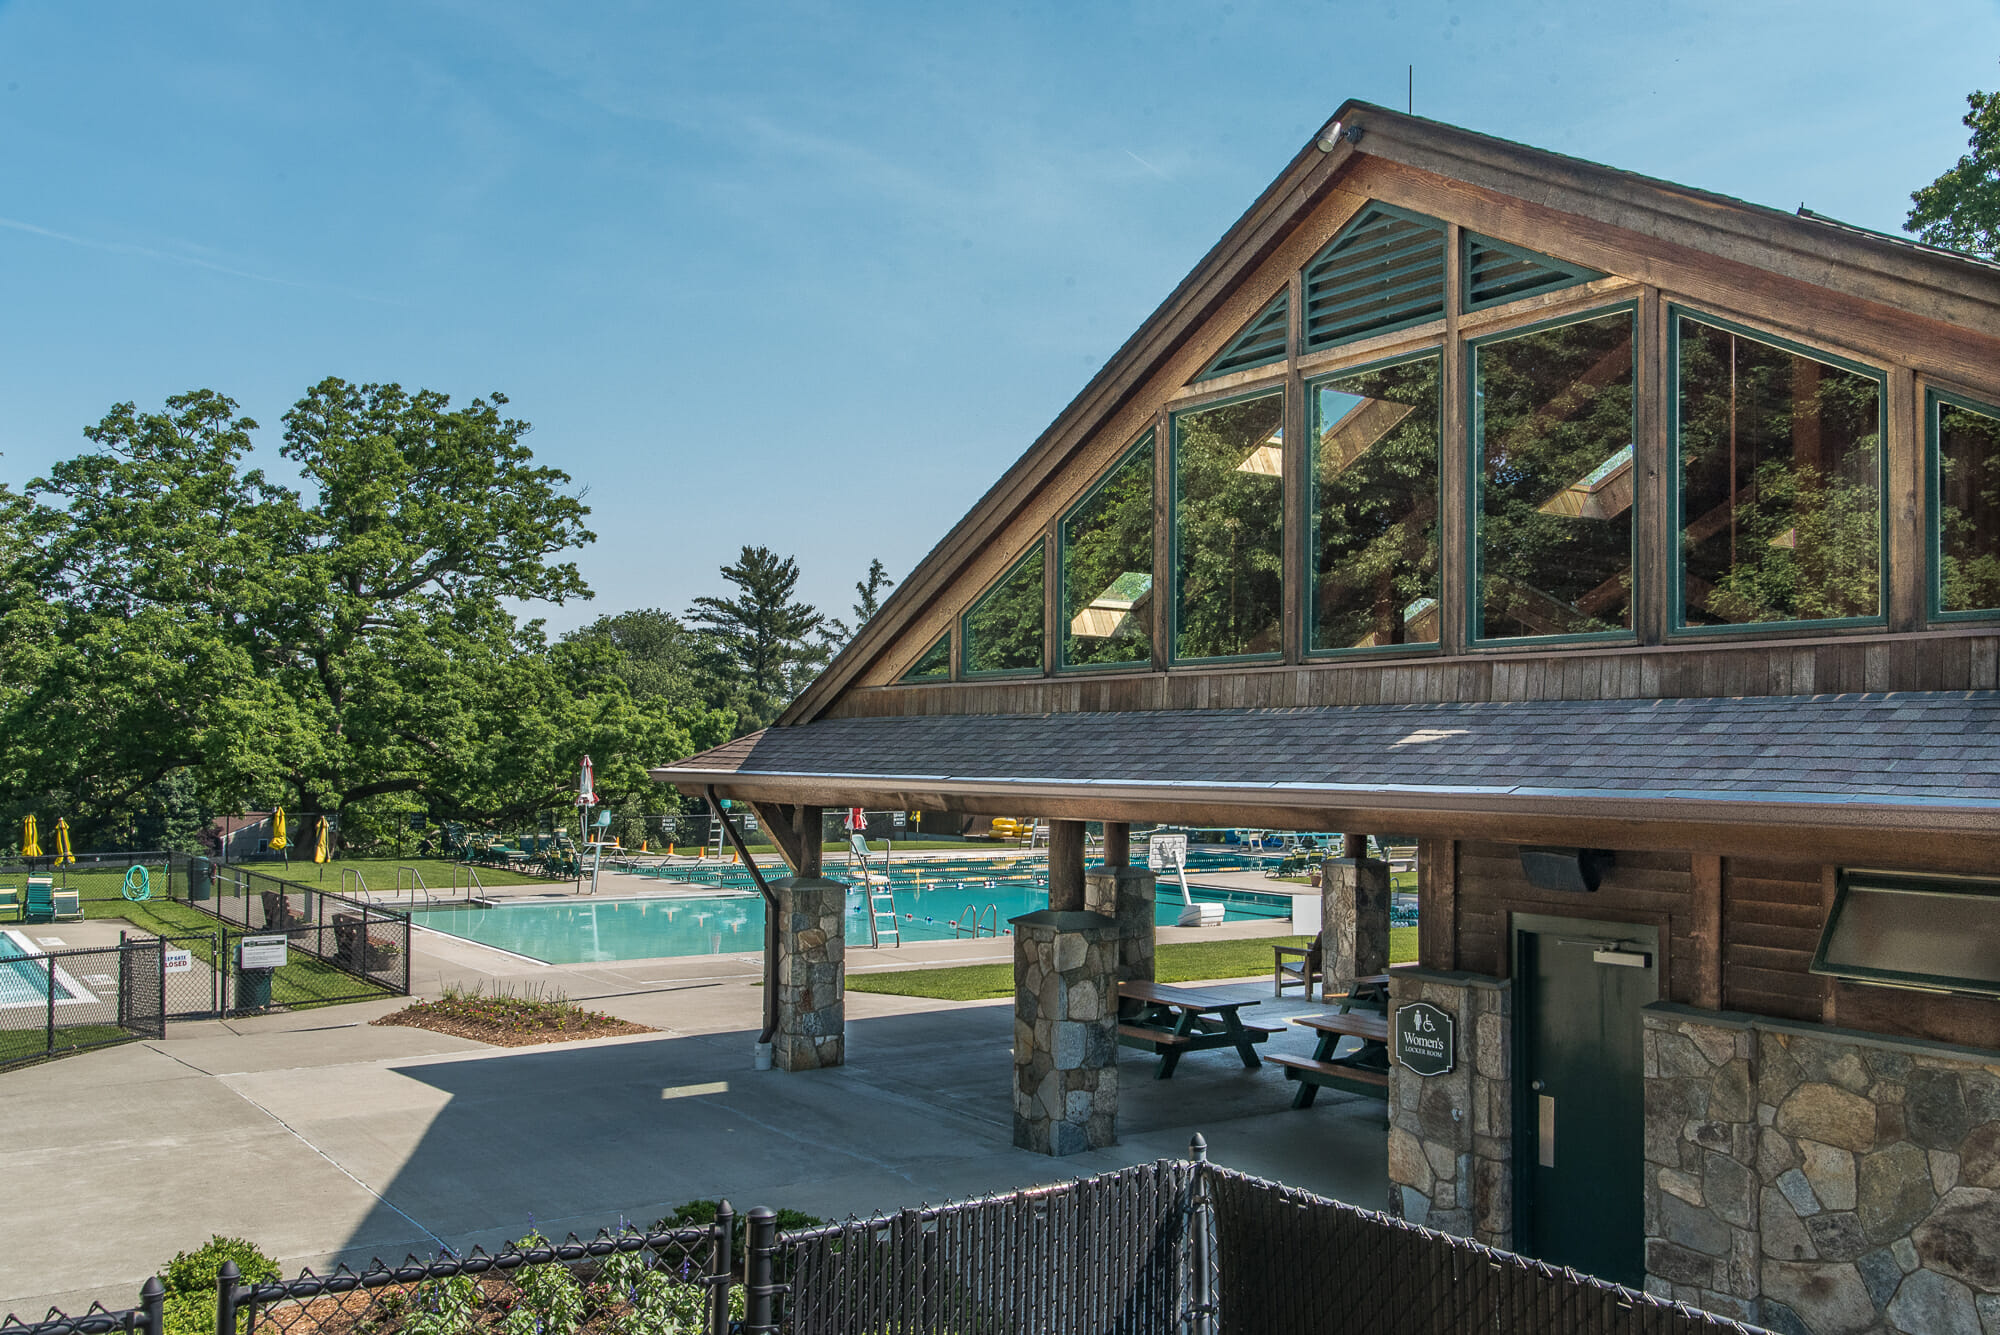 Katonah State Park Pool House